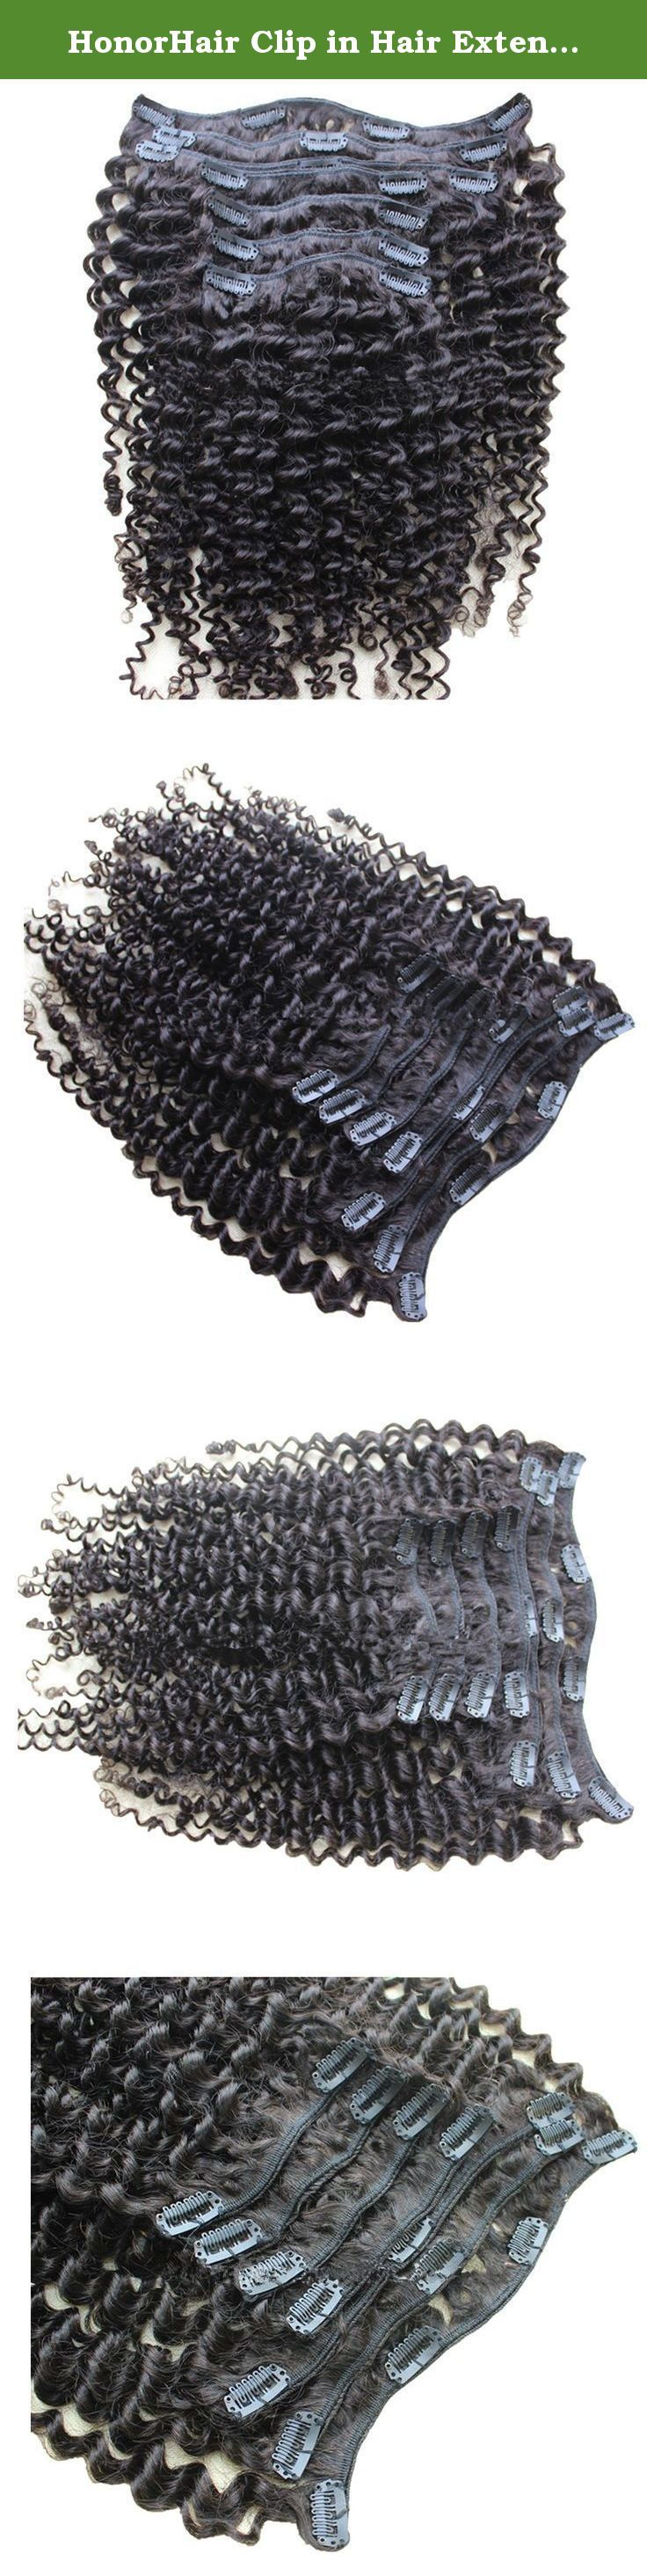 HonorHair Clip in Hair Extensions Kinky Curl 100% Brazilian Virgin Human Hair Weave Kinky Curly Clips on Hair Weaves 100g for Black Women. All of HonorHair Human Hair is UNPROCESSED 100% Brazilian Virgin Hair without any Synthetic or Animal Hair, It is Natural Movement of Premium Quality Virgin Human Hair. 1. The most popular hair extension product all over the world! 2. Clips are already attached and the piece is ready for instant use in just 5 minutes. 3. Usage: Can be curled…